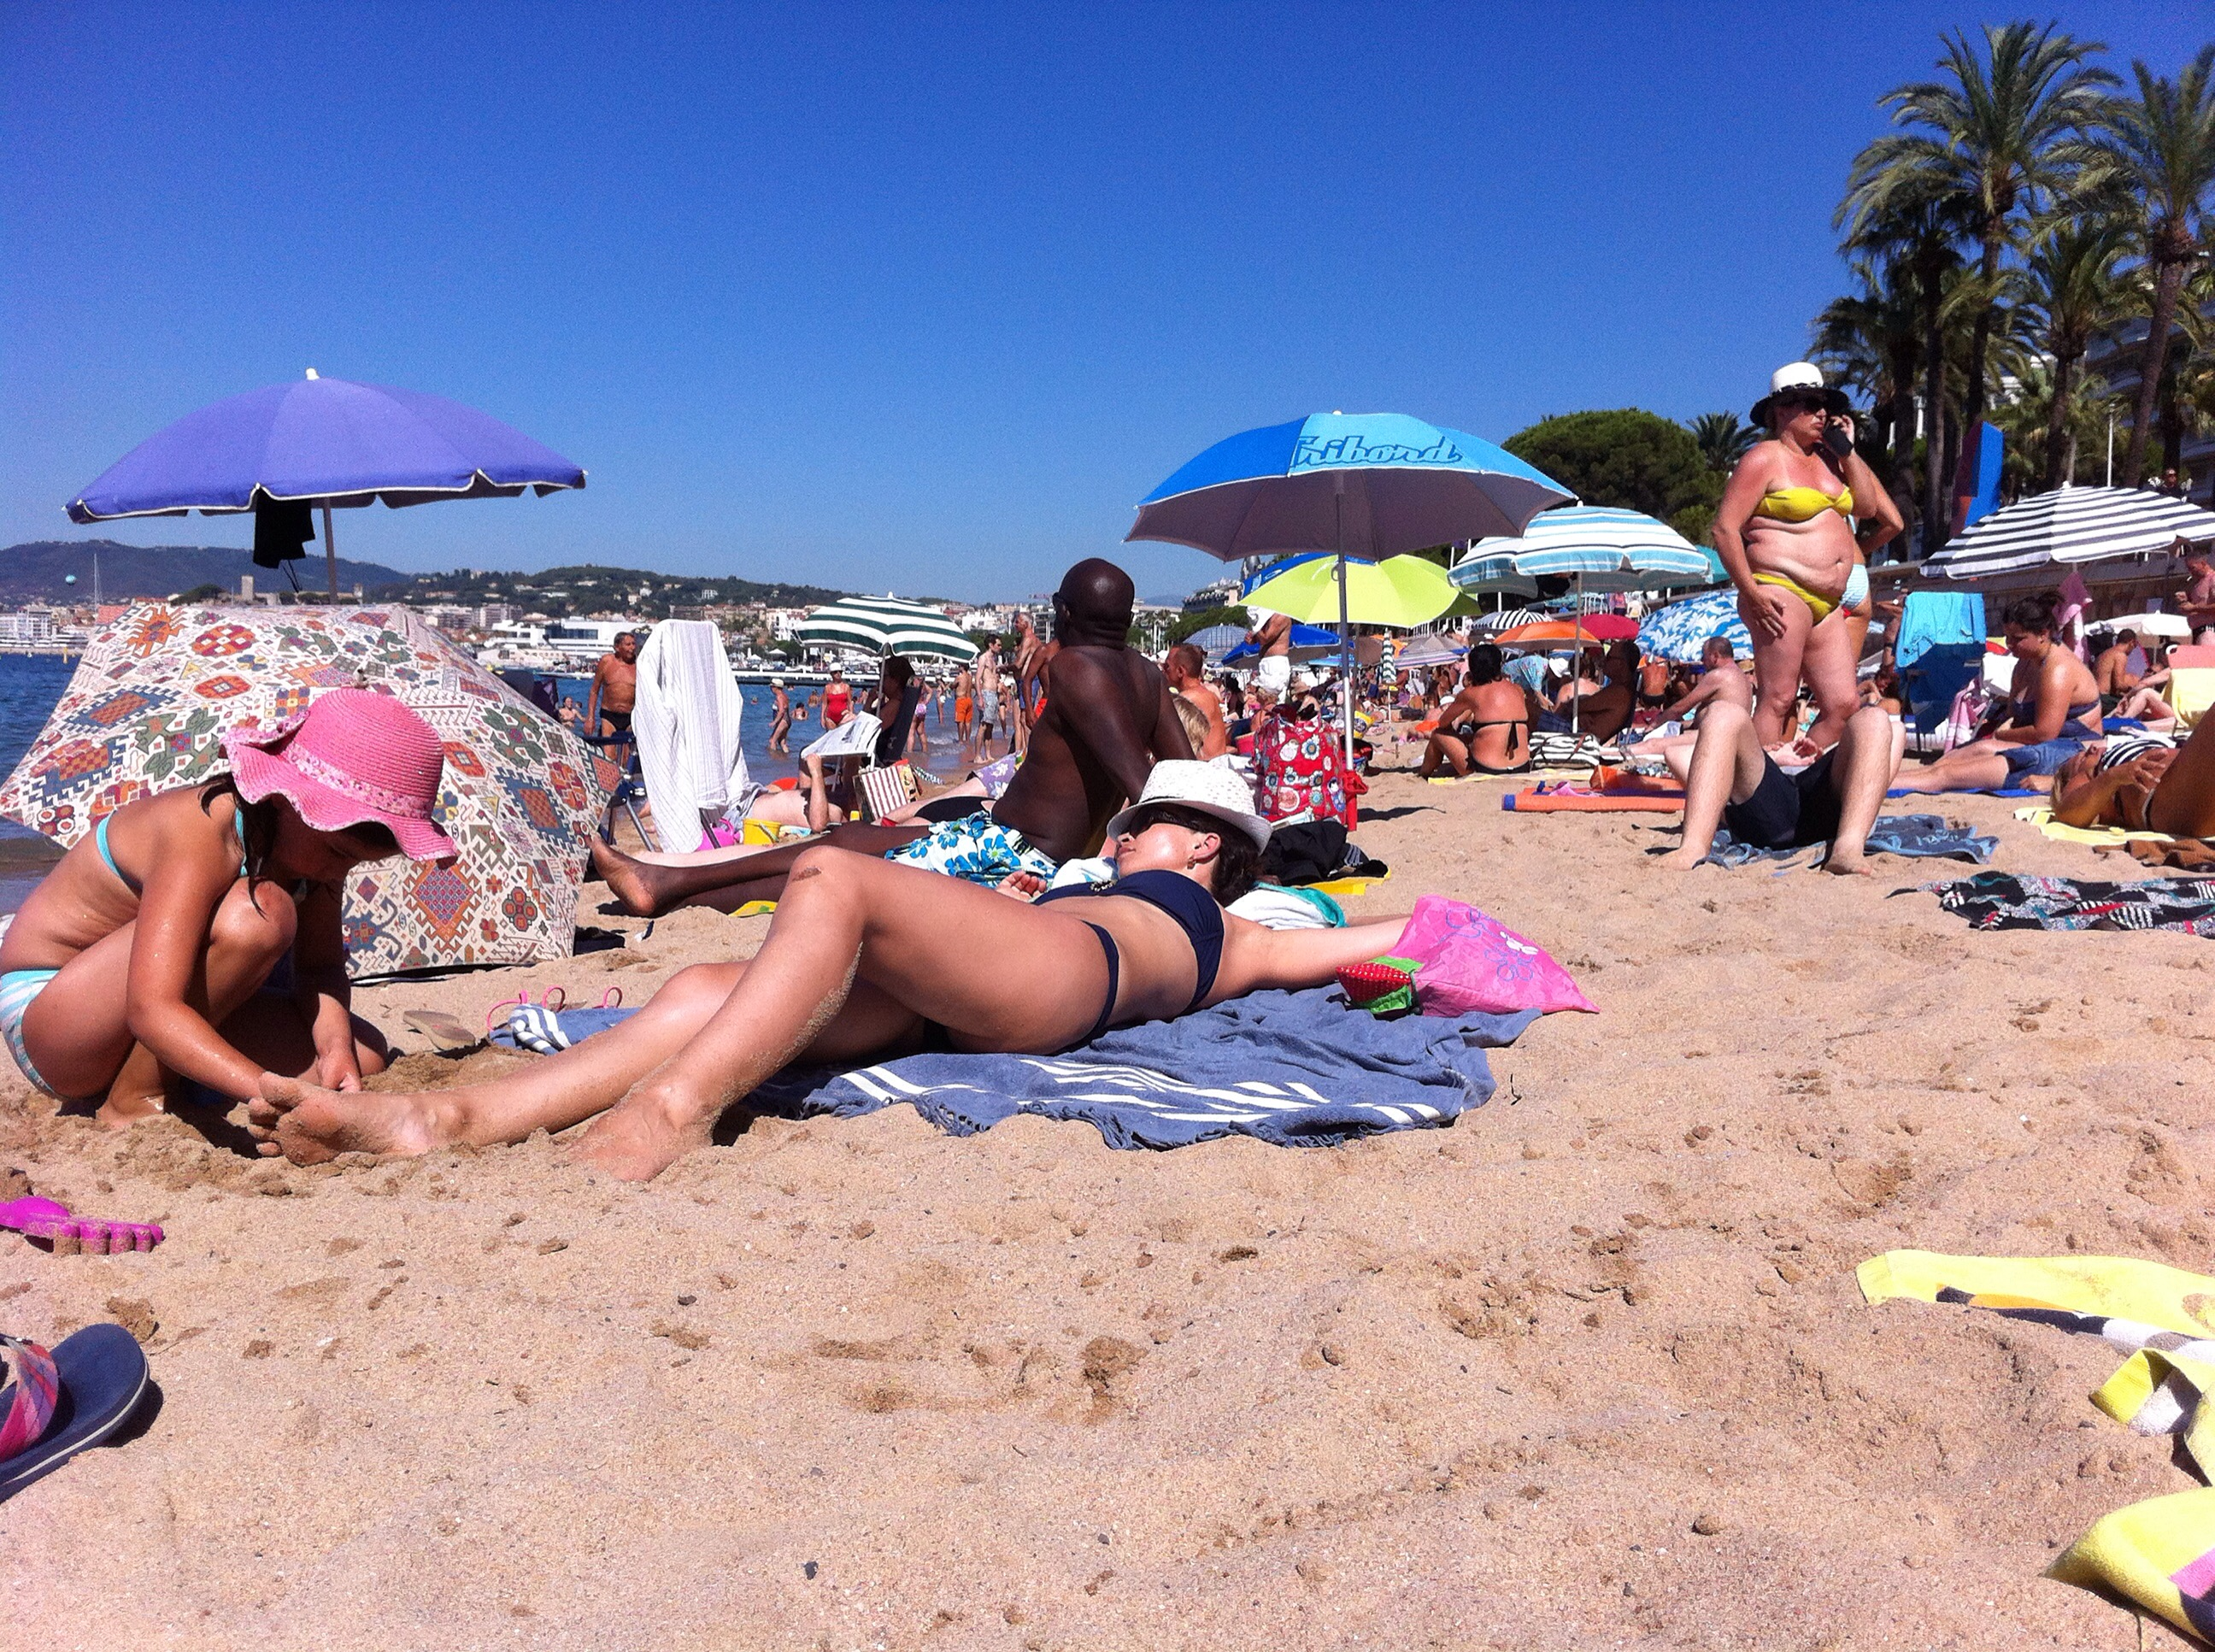 sun seekers on the public beach in Cannes France 2016